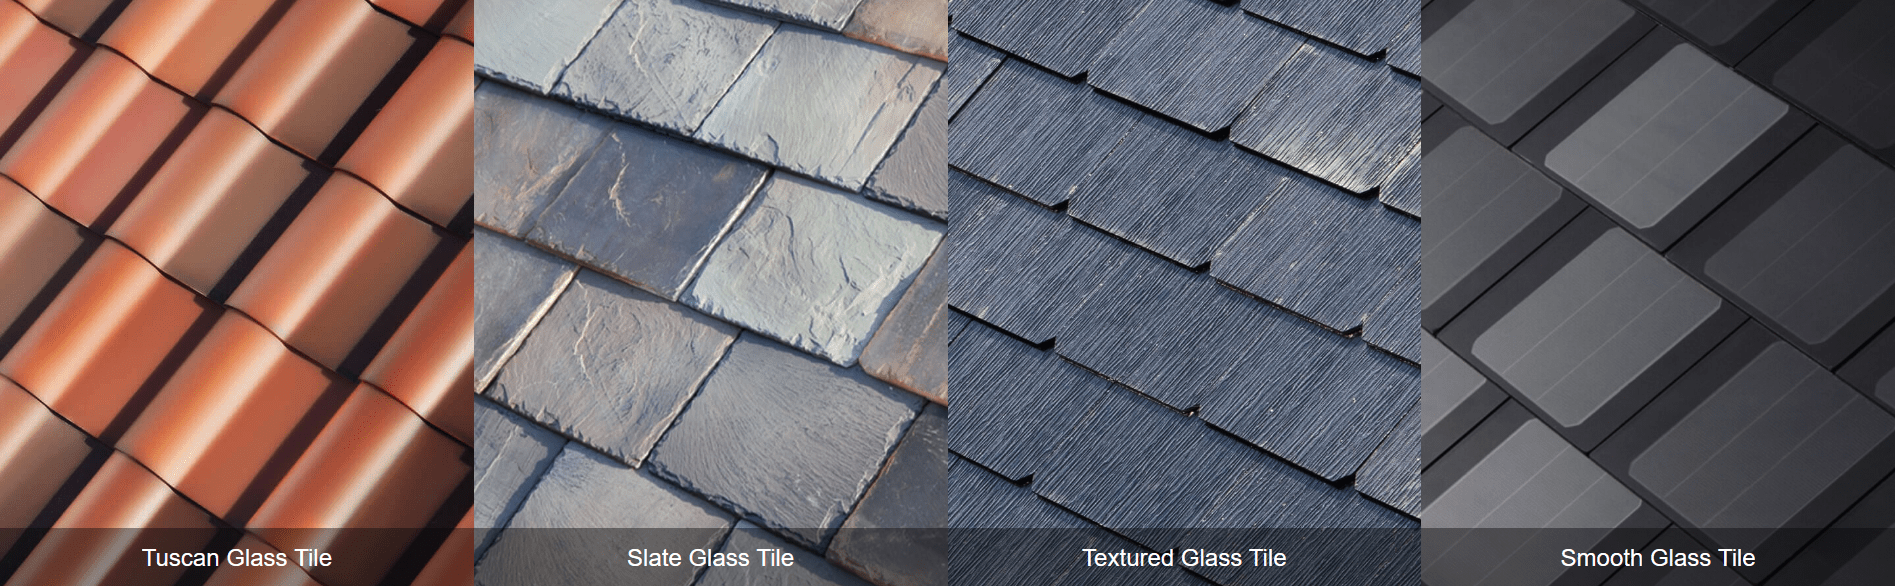 Solar Roof Preferences